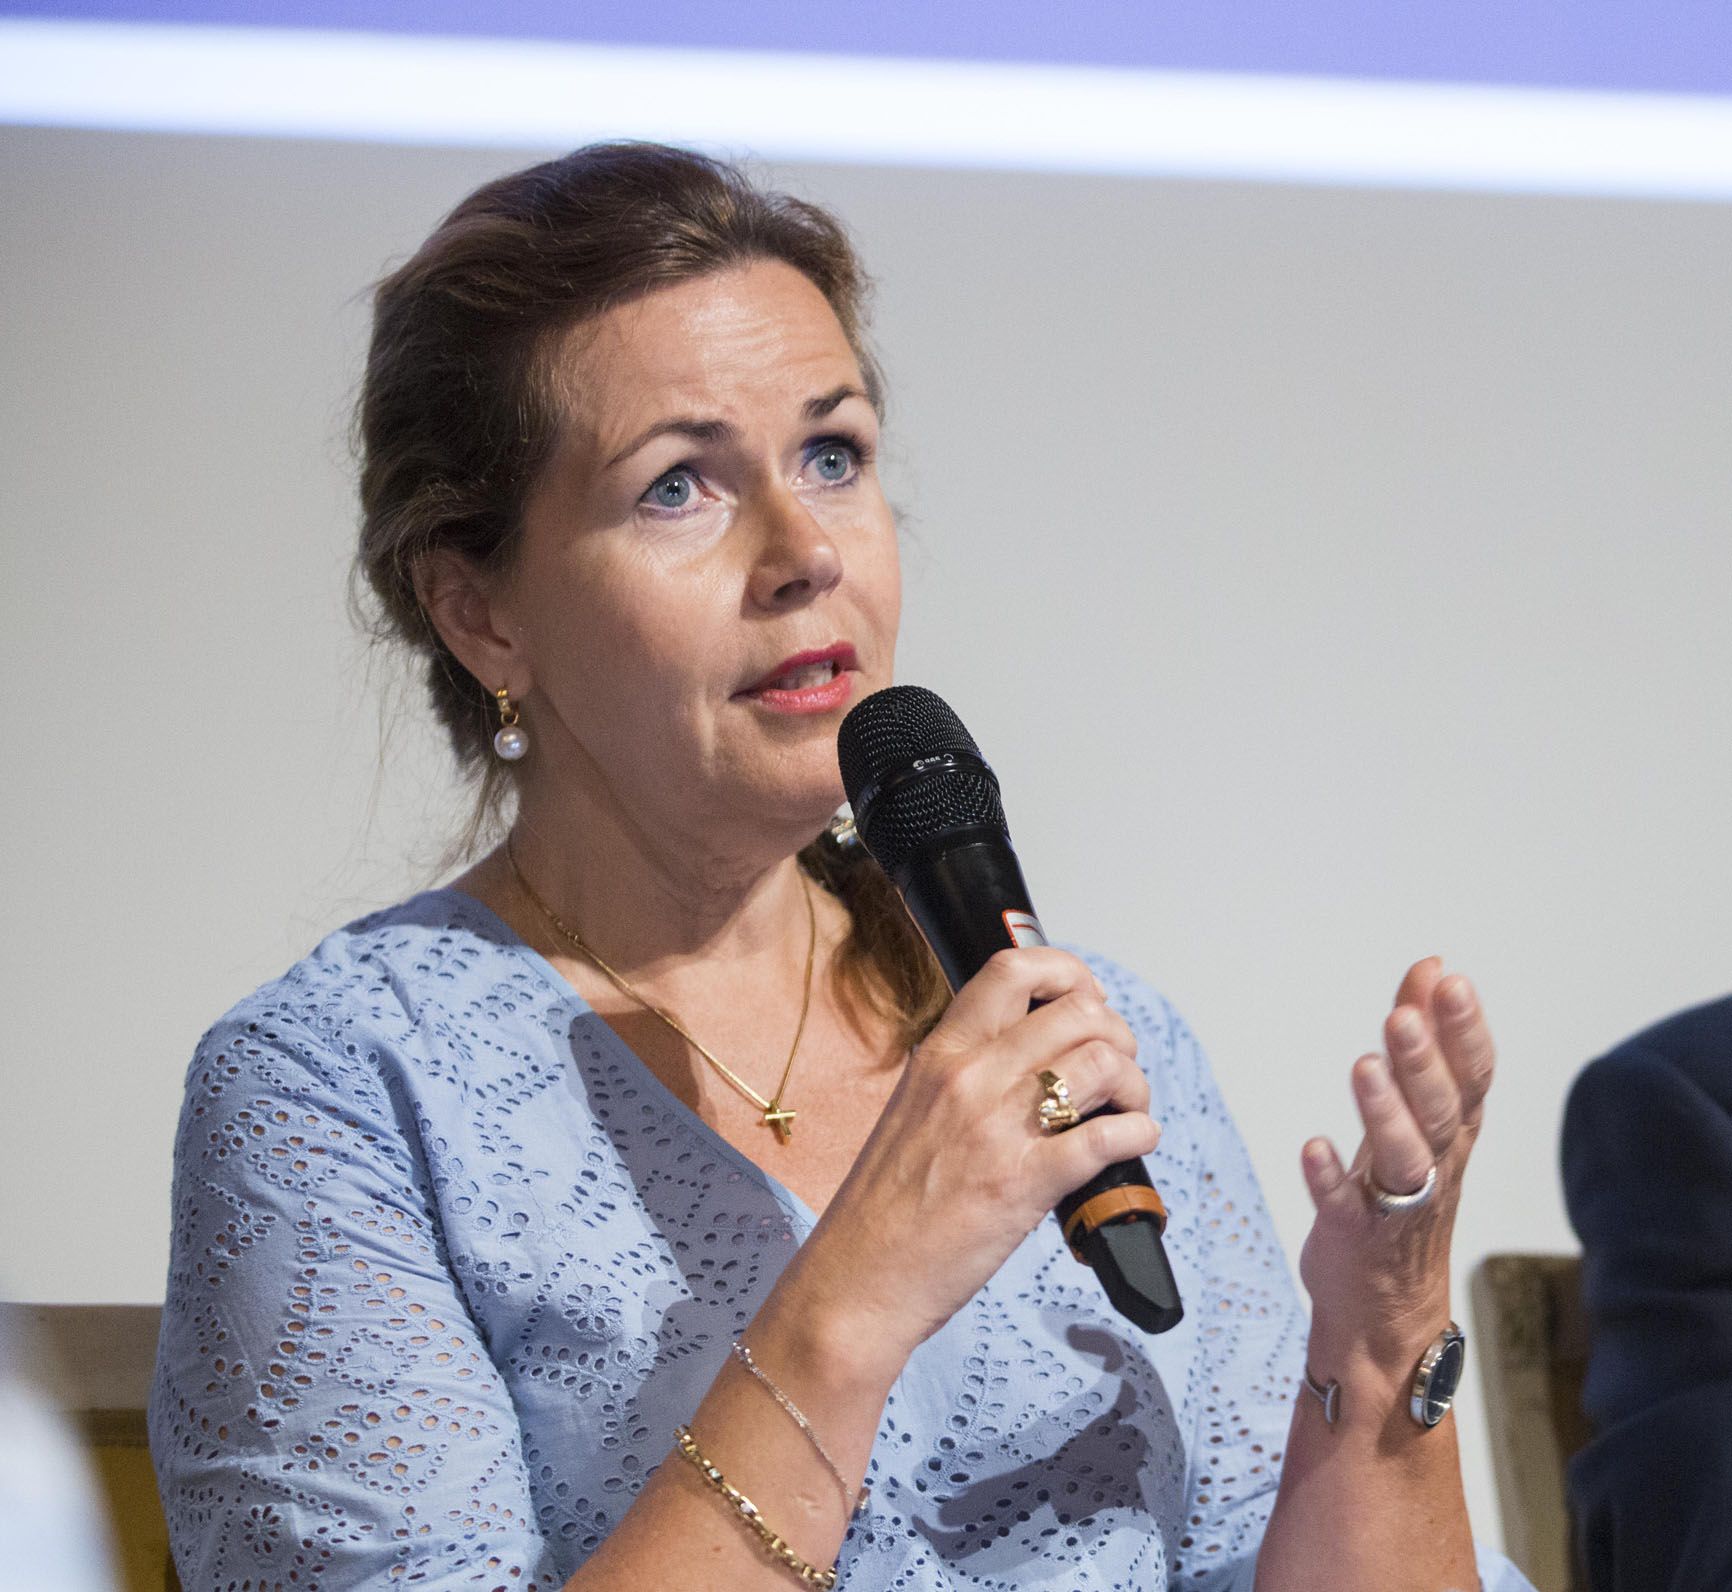 Cecilia Wikström, Chair of the European Parliament's Committee on Petitions, during the 2017 annual conference of the European Network of Ombudsmen.